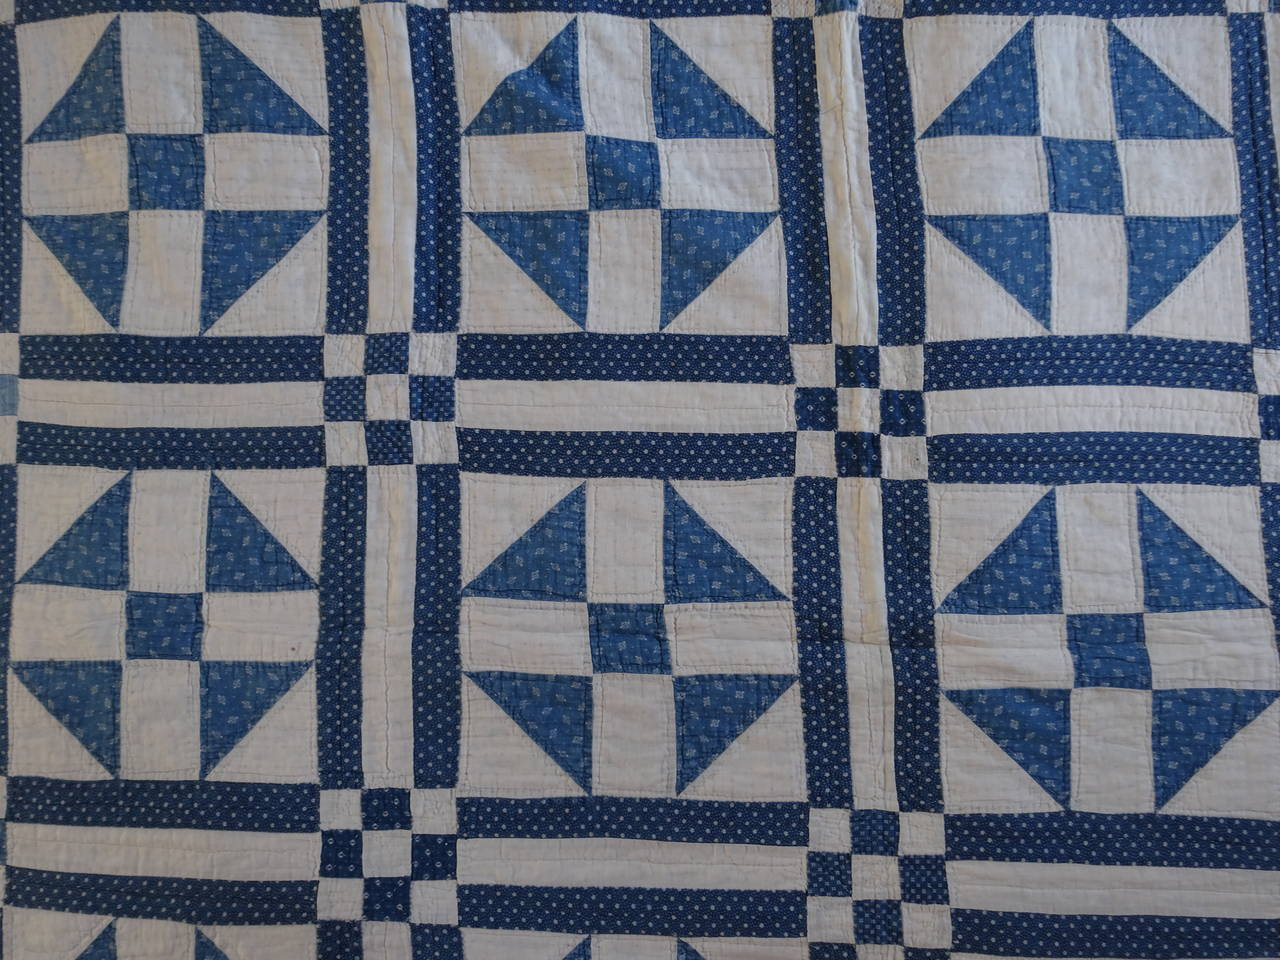 Shoo Fly Quilt Block In A Triple Grid For Sale At 1stdibs